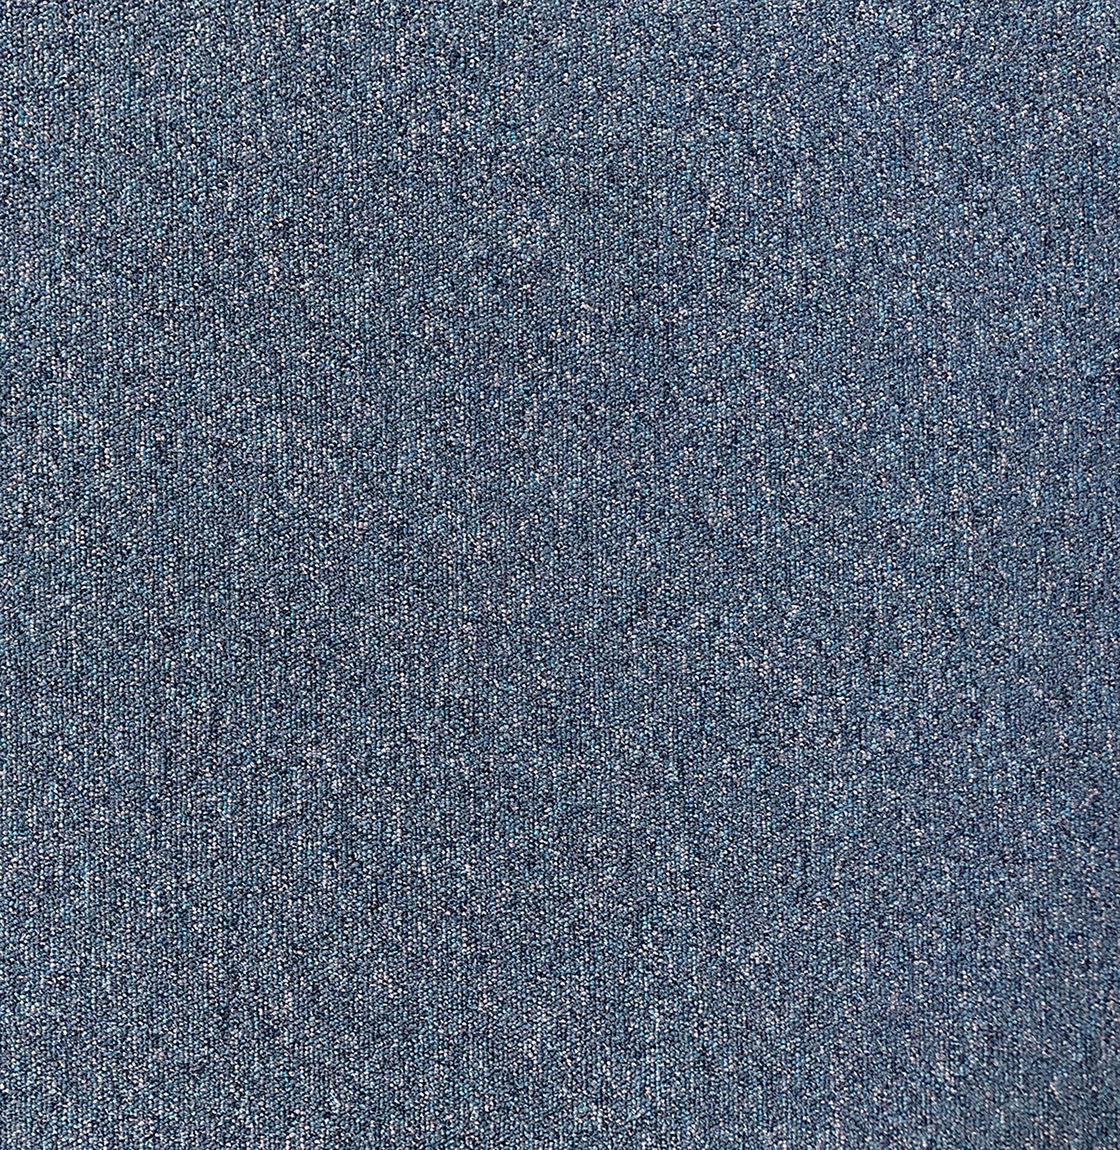 Looking for Interface carpet tiles? Heuga 727 60X60cm in the color Blue Space is an excellent choice. View this and other carpet tiles in our webshop.